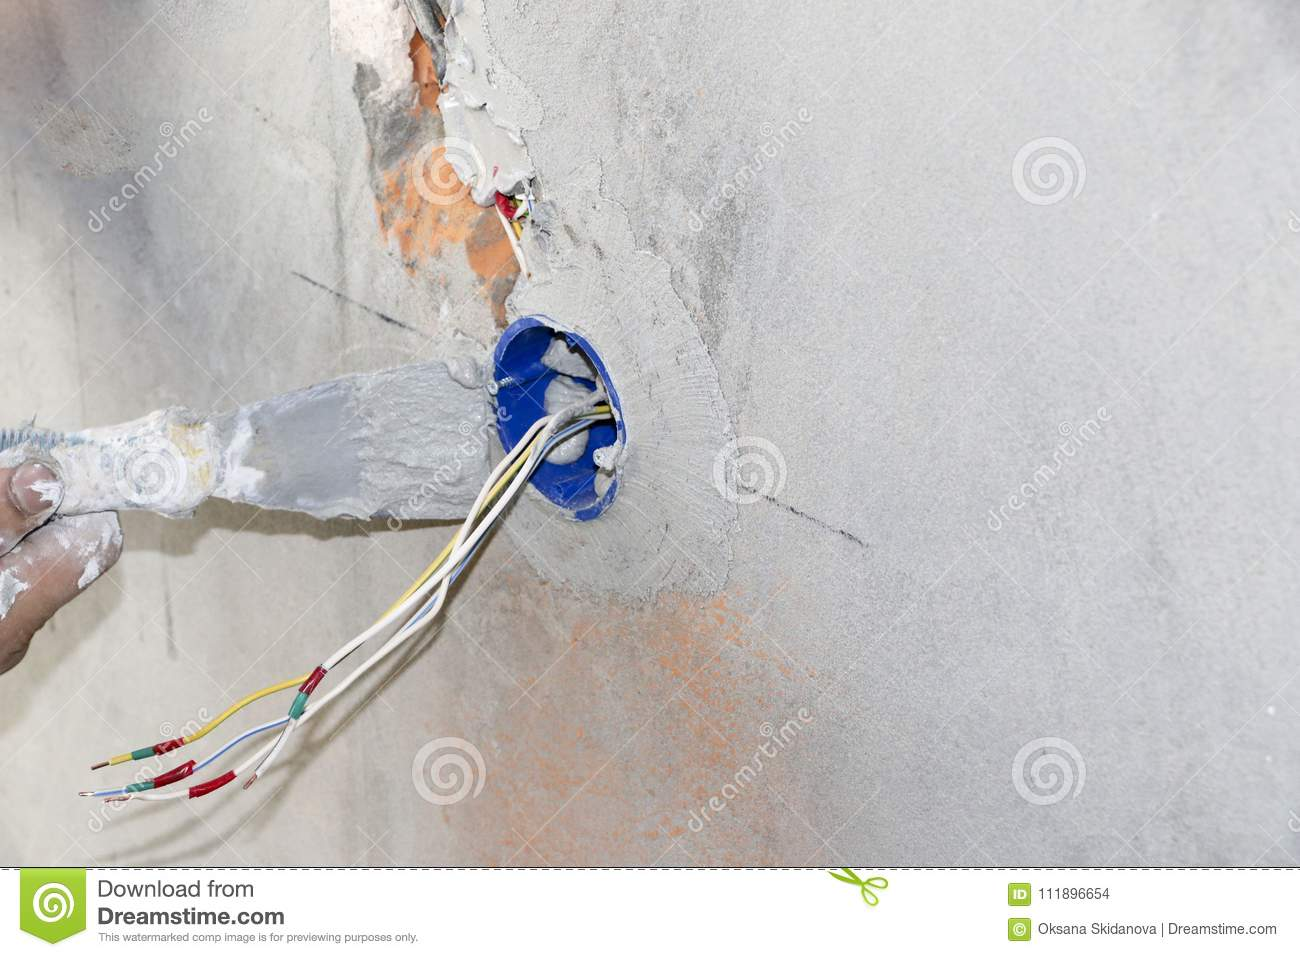 Wall Socket Installationwork On Installing Electrical Outlets Wiring For Installation Work Electrician Prepares Fitting